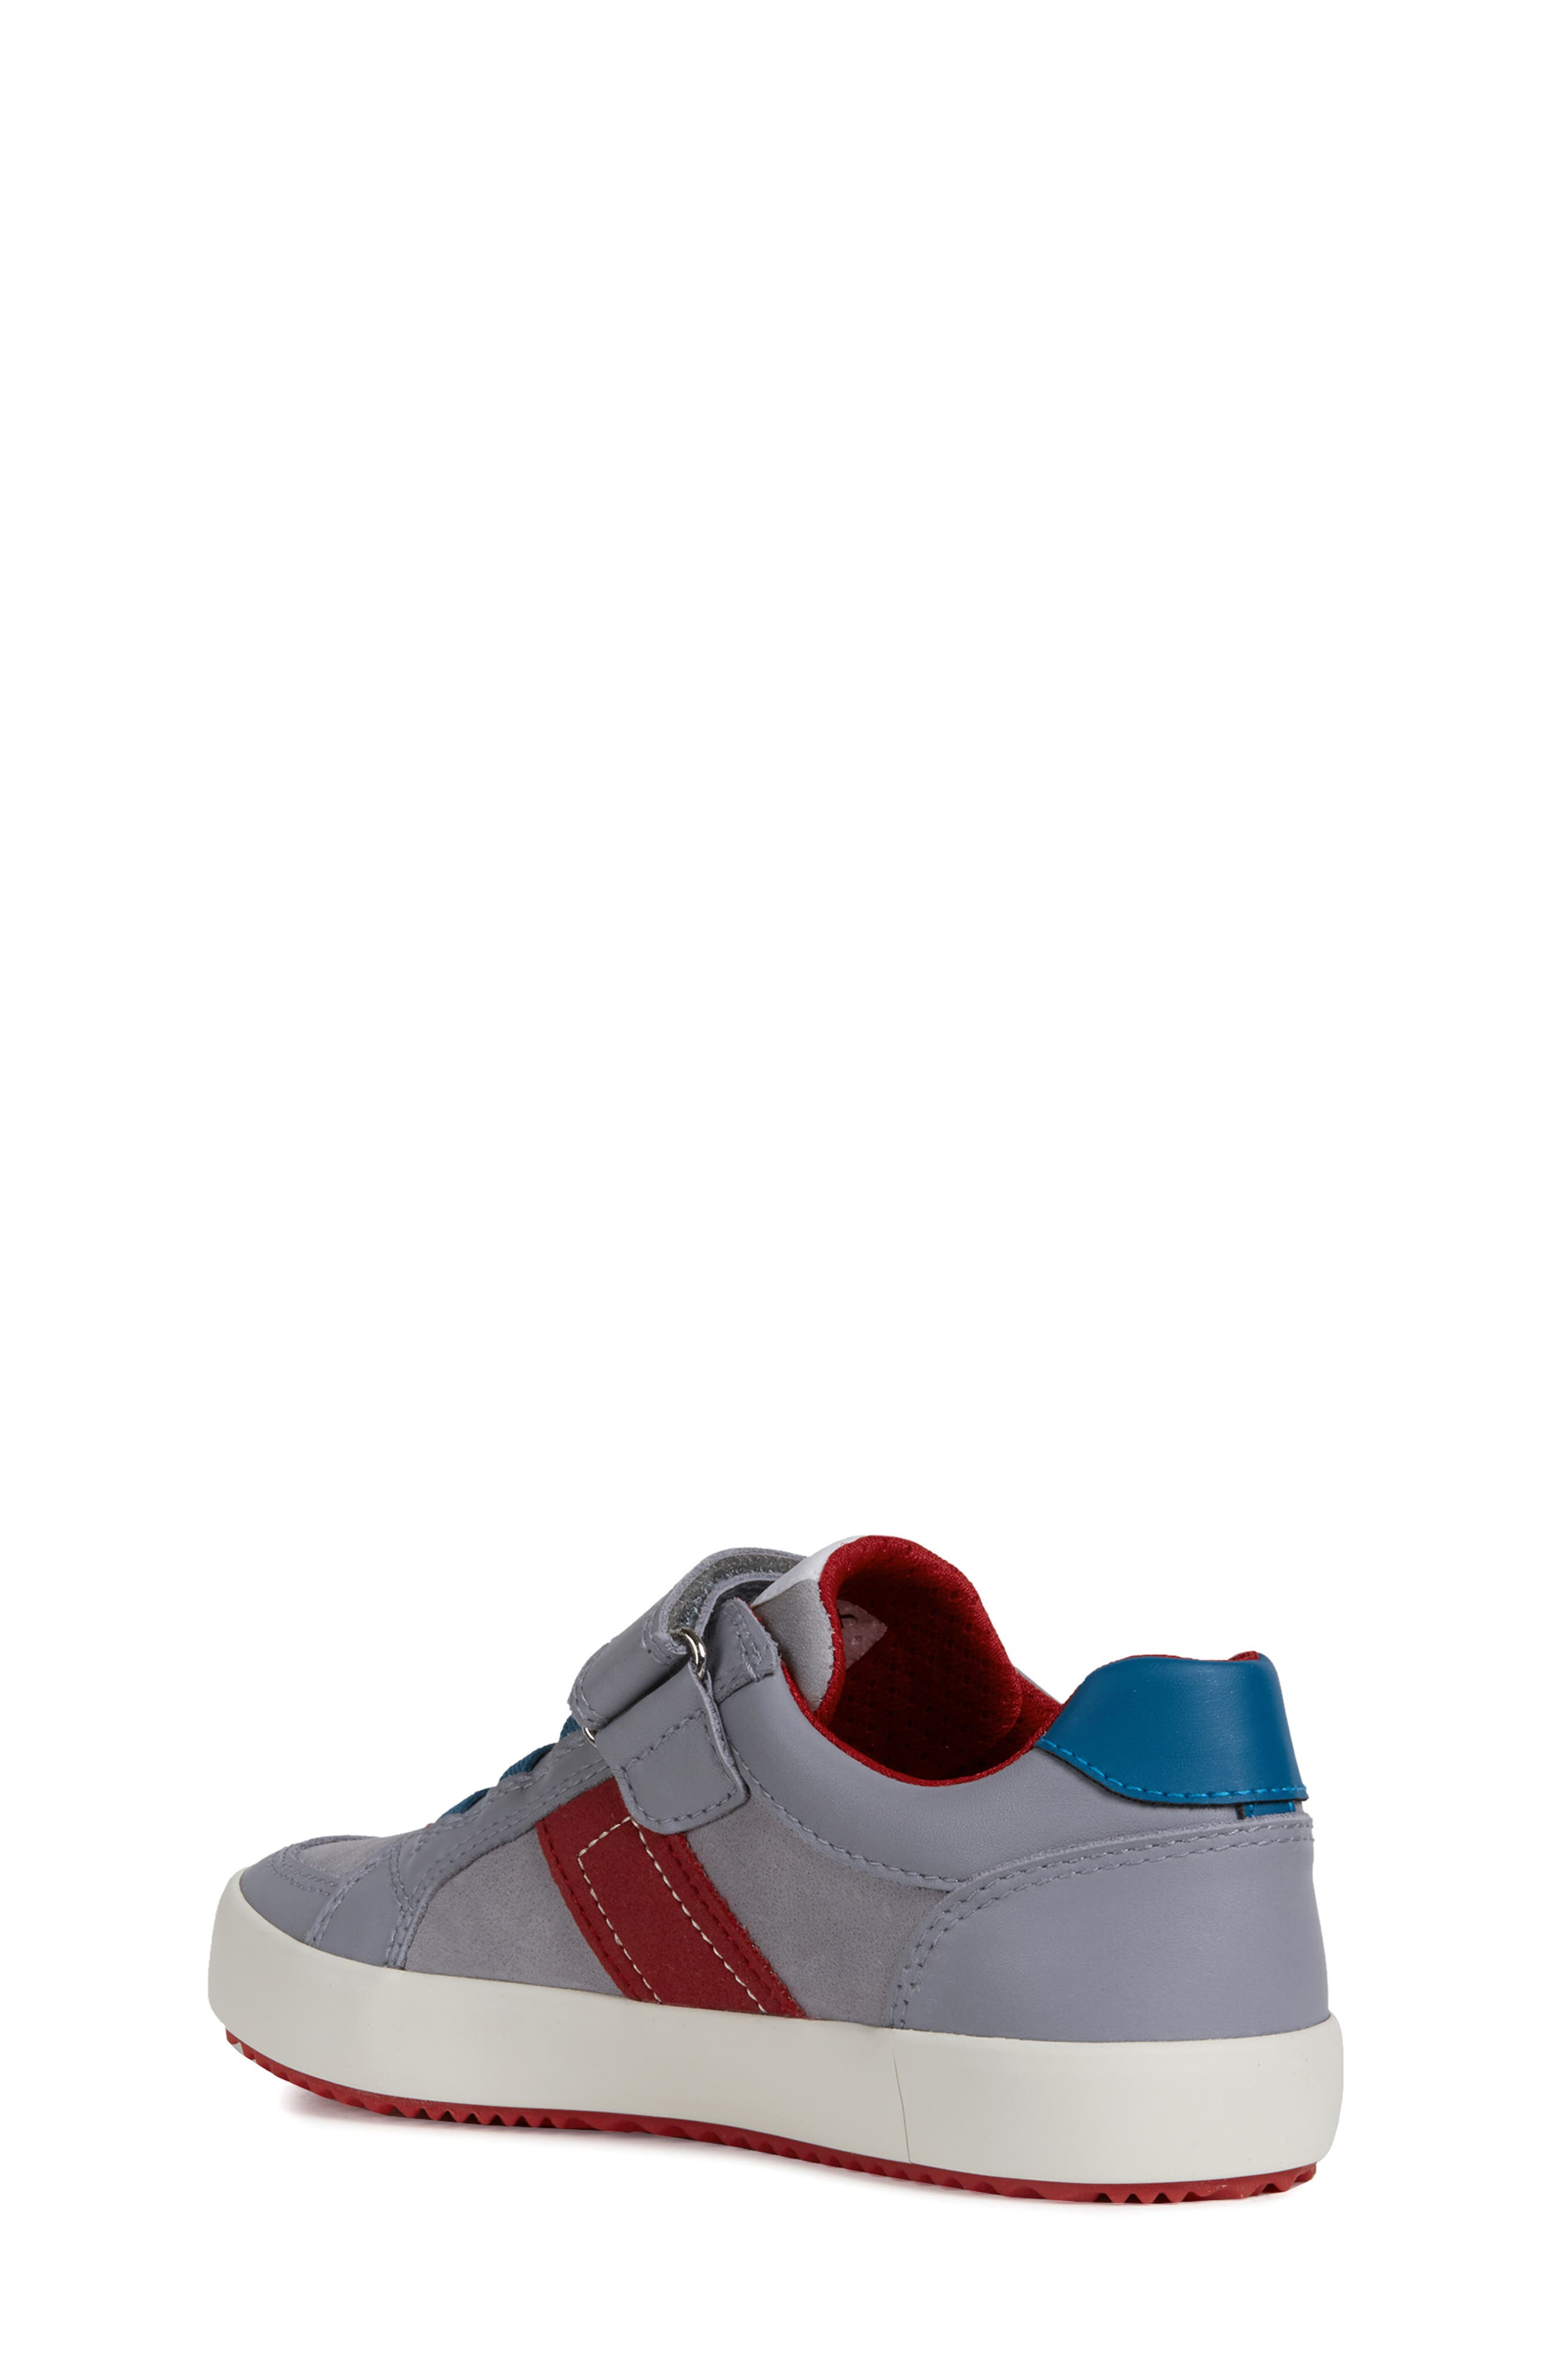 Alonisso Low Top Sneaker,                             Alternate thumbnail 2, color,                             GREY/ RED